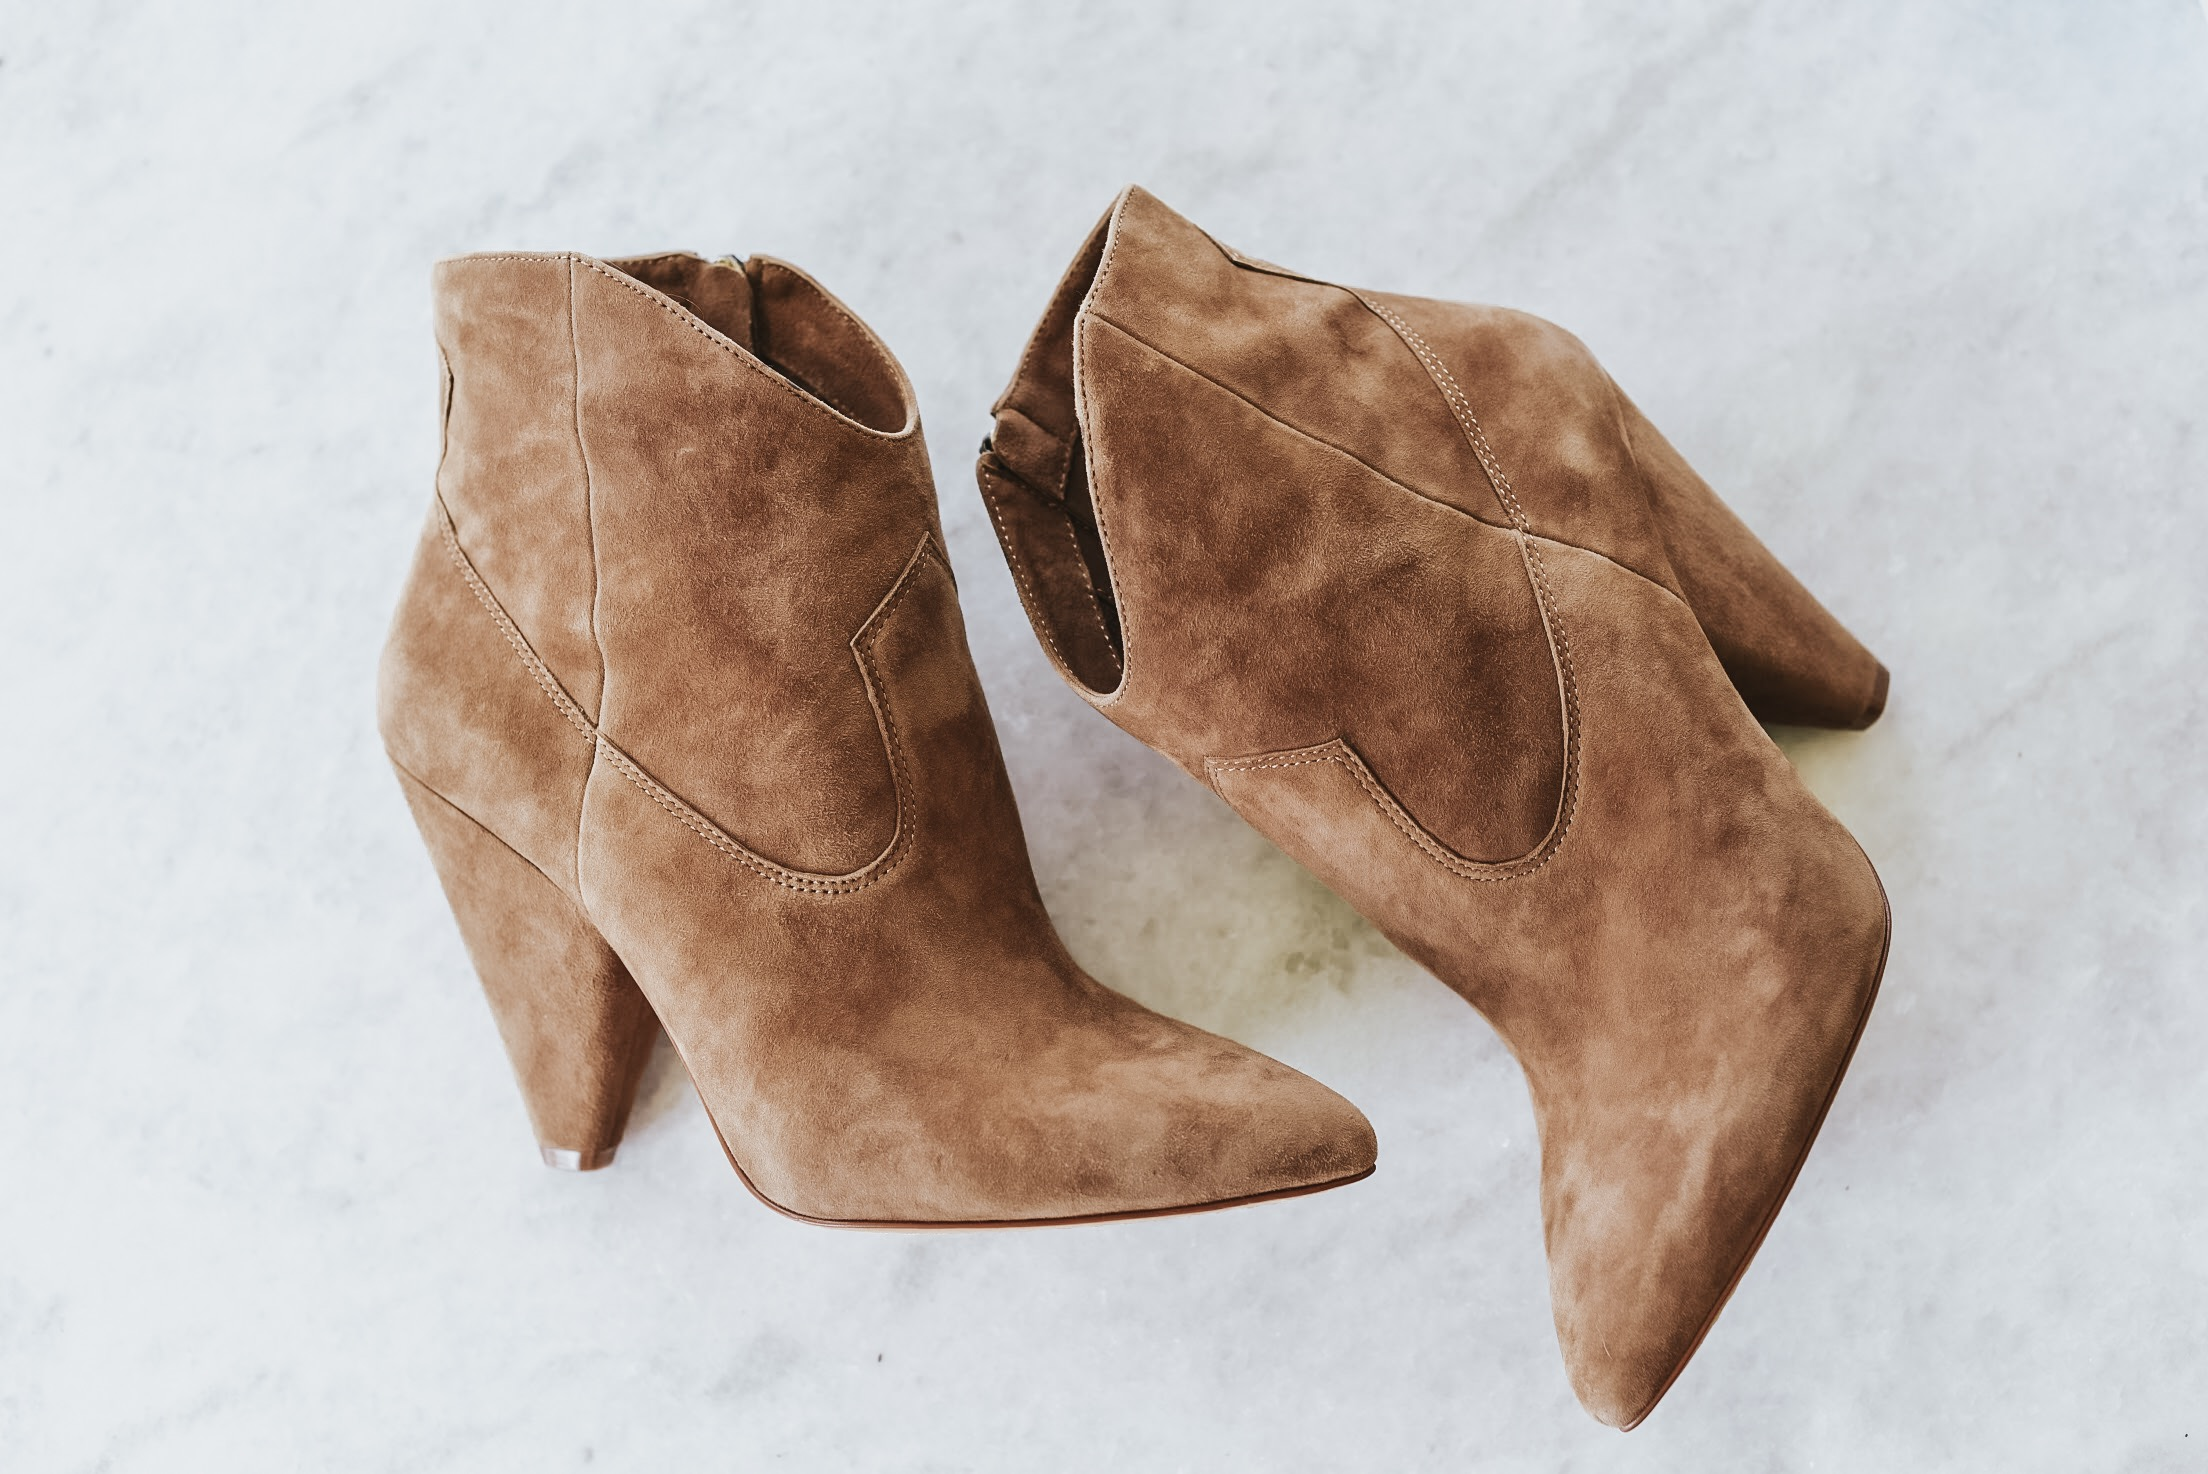 Vince Camuto Booties - Nordstrom Anniversary Sale